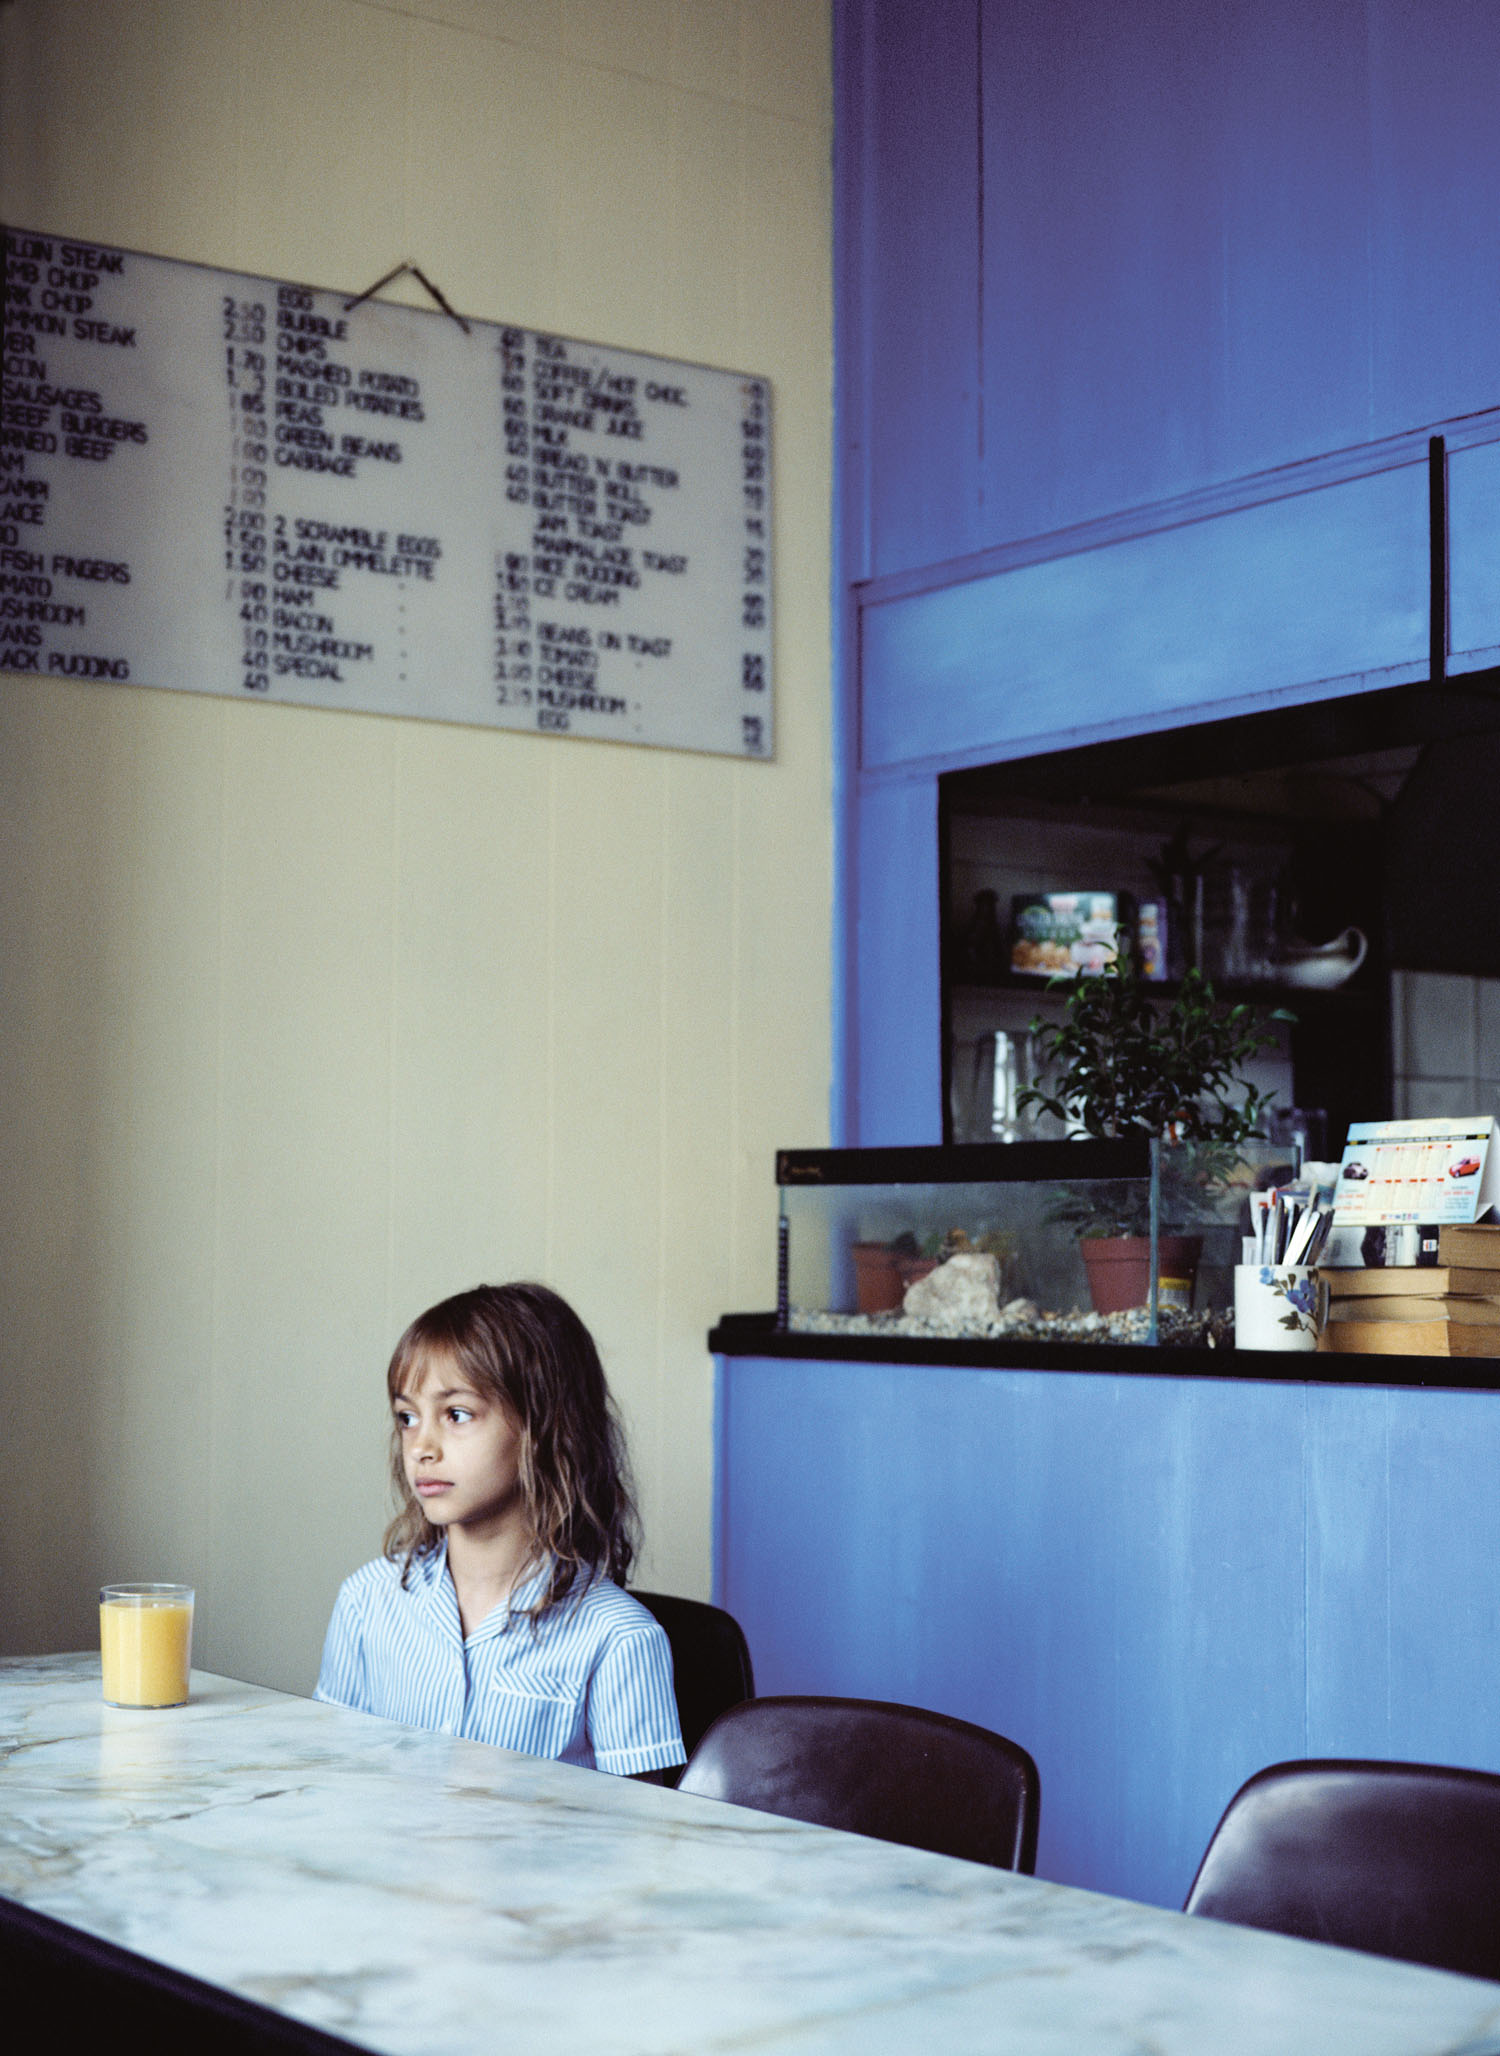 Shivani Waiting for Breakfast  National Portrait Gallery Taylor Wessing &  International Colour Awards  2006